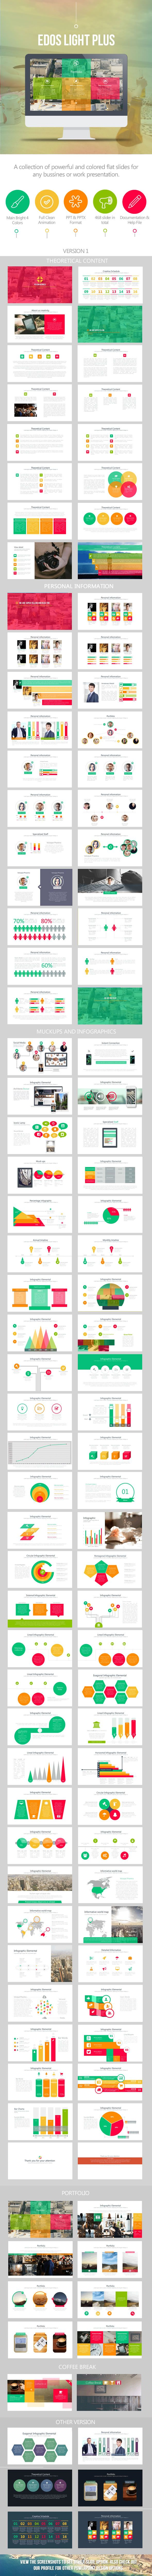 Edos Light Plus - PowerPoint Templates Presentation Templates